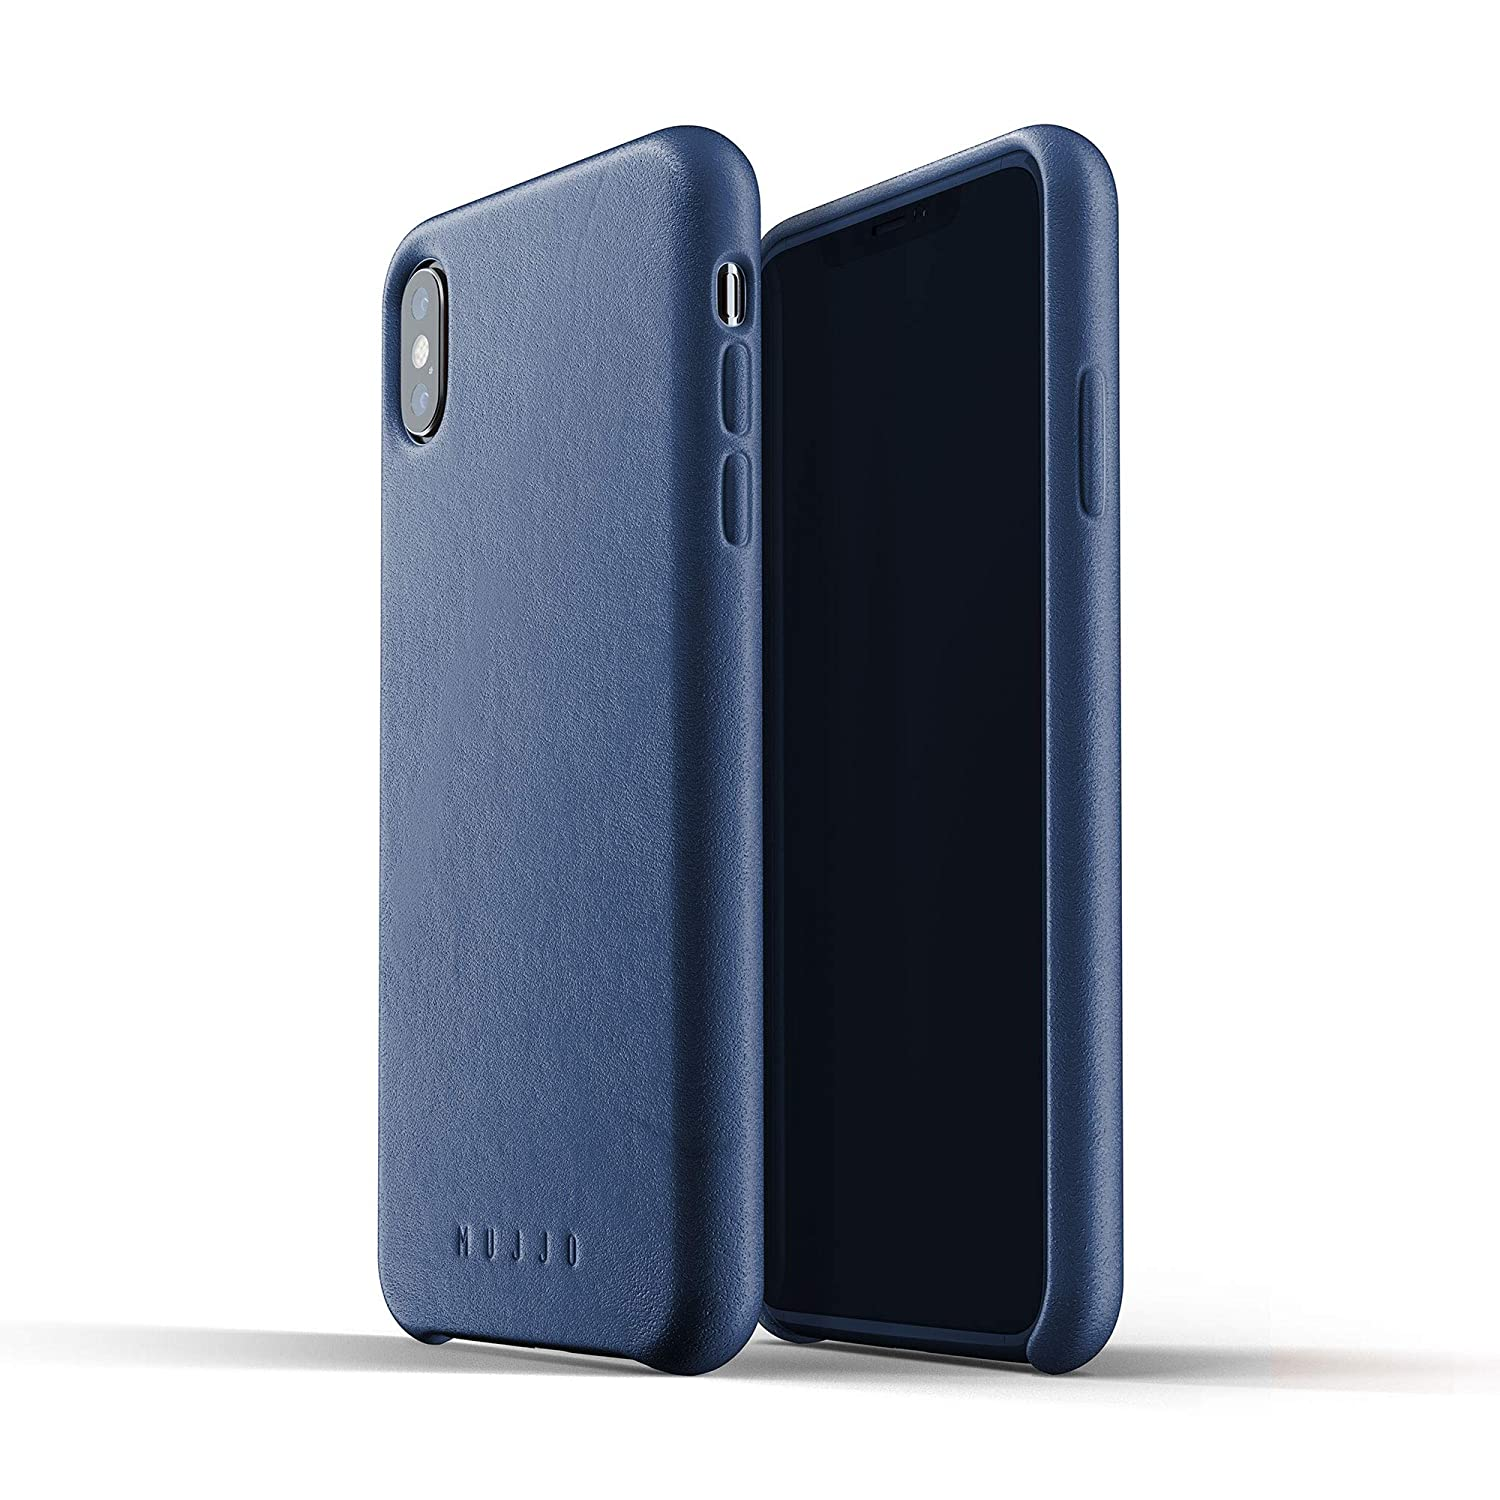 Funda para Iphone XS Max de cuero natural, azul (xmp)